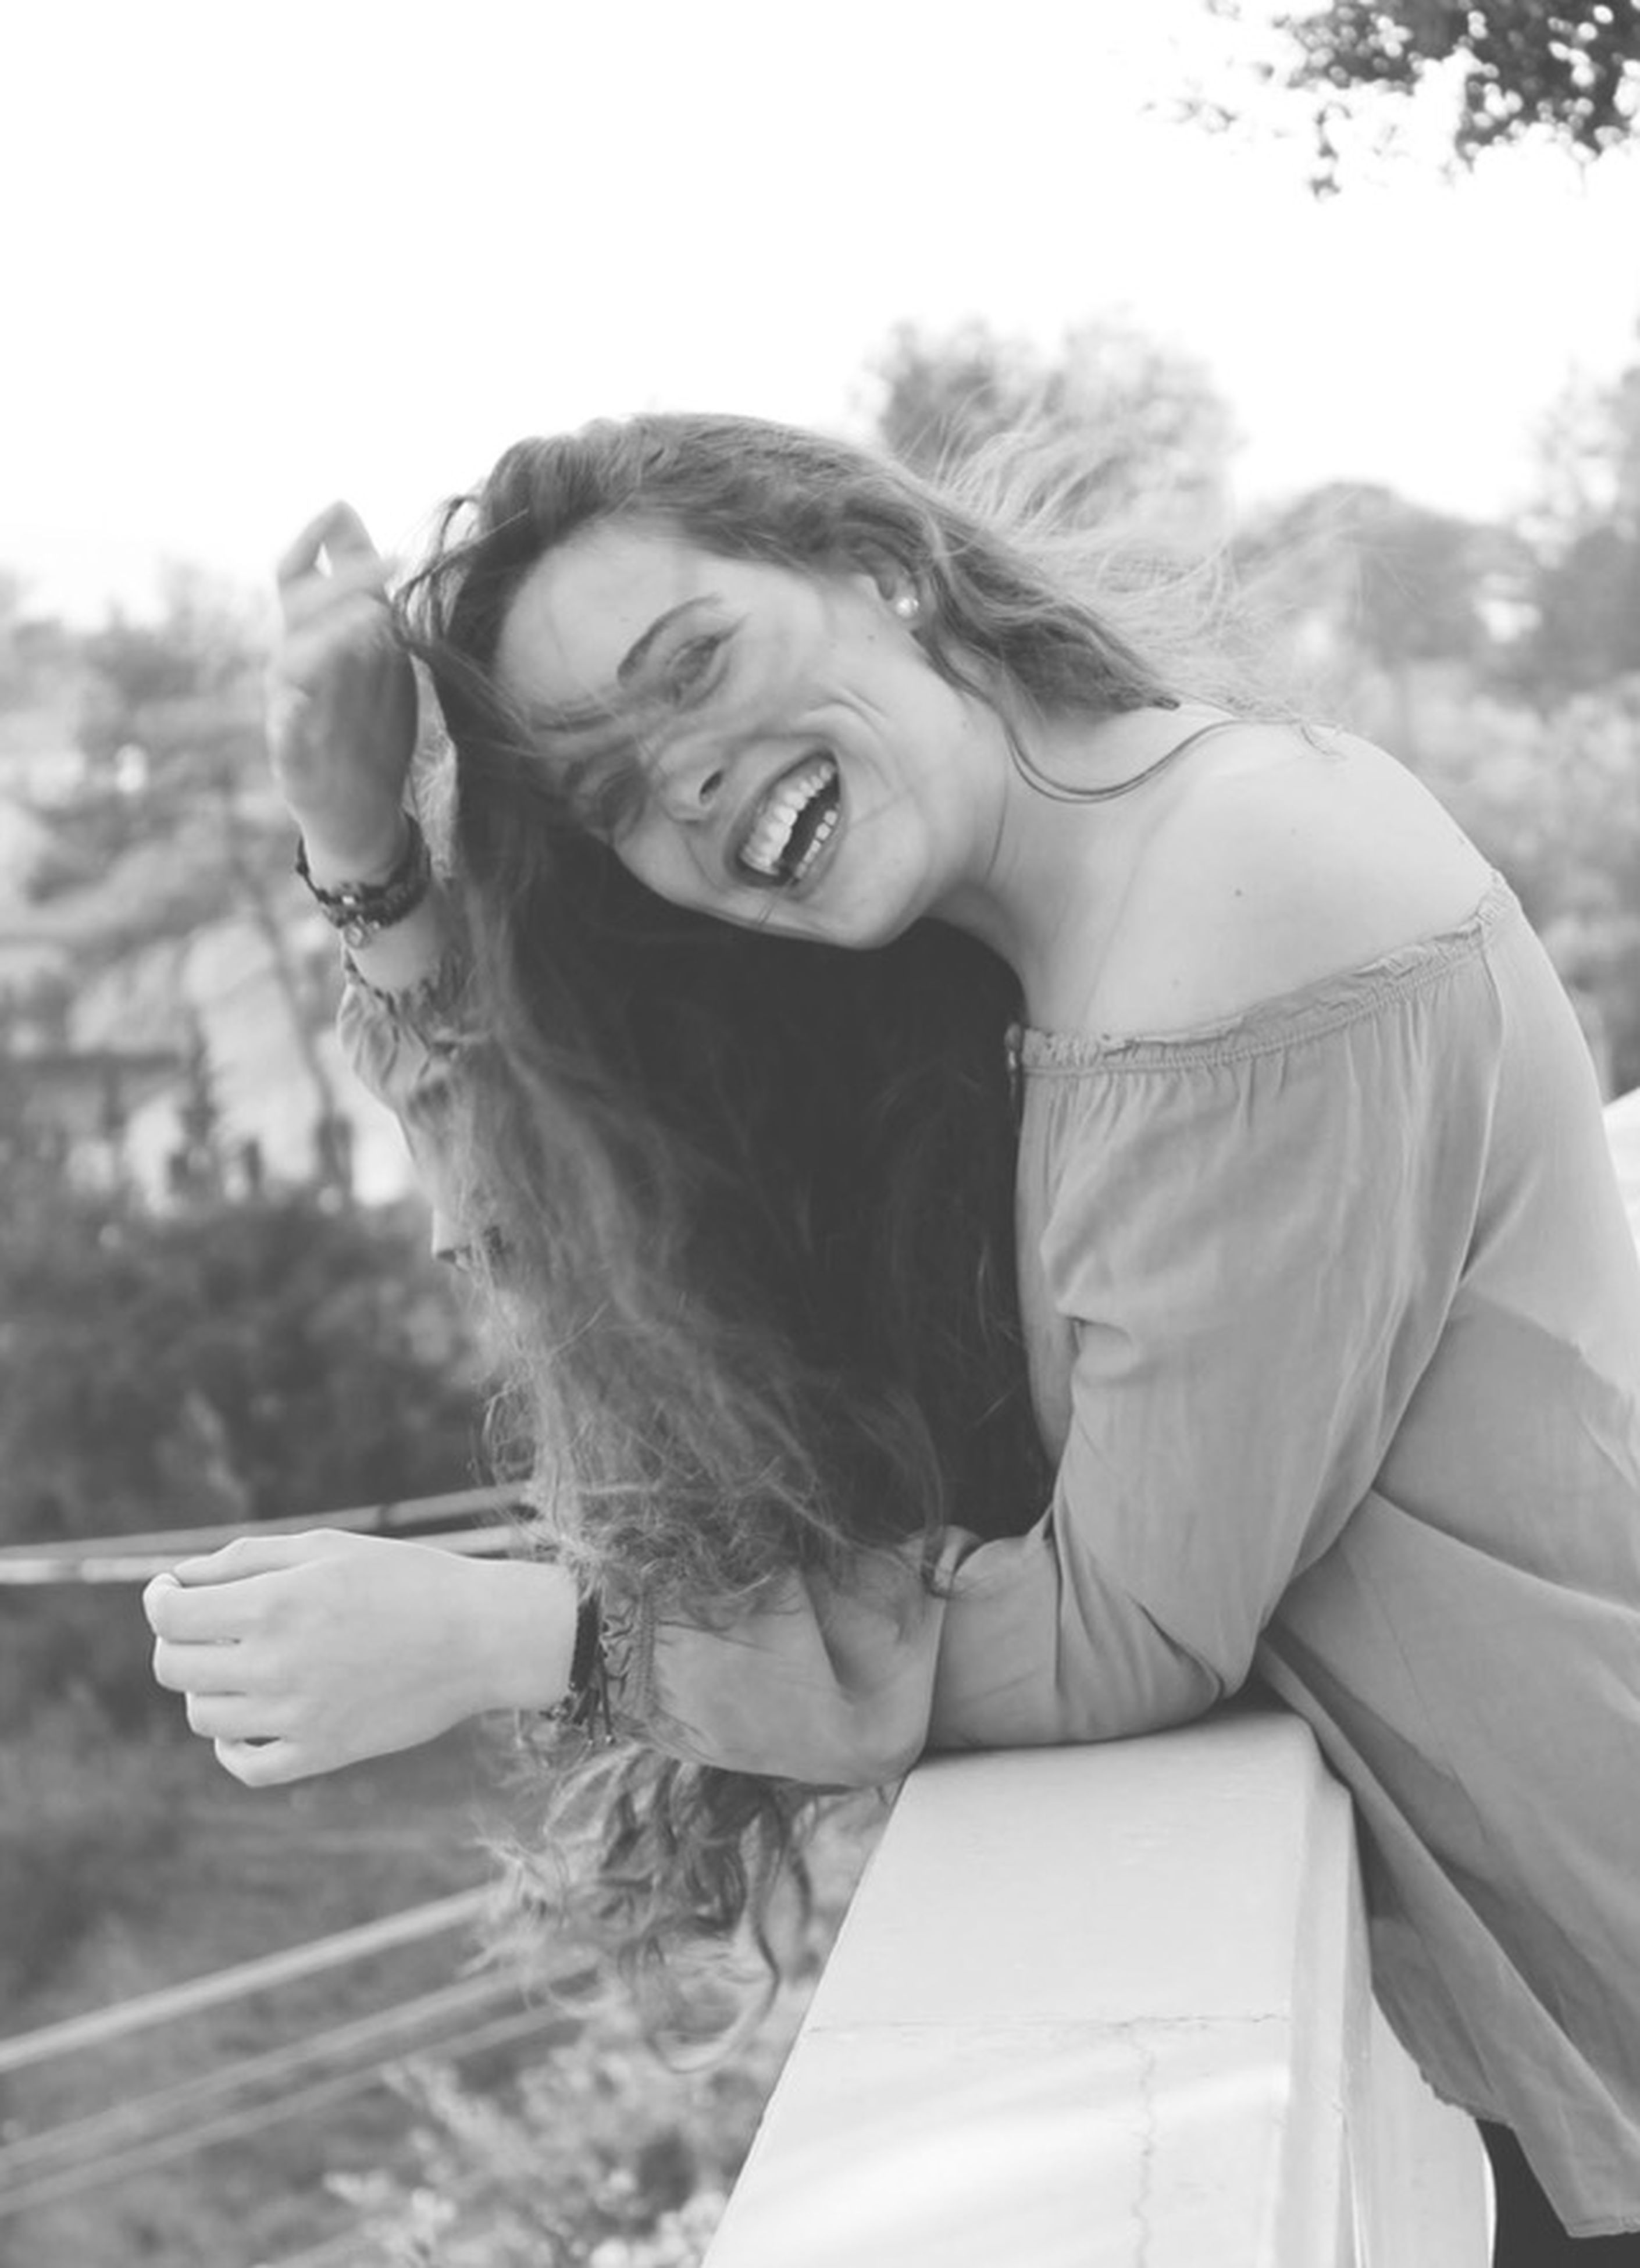 person, lifestyles, young adult, focus on foreground, leisure activity, headshot, casual clothing, young women, looking at camera, portrait, front view, long hair, waist up, day, smiling, tree, head and shoulders